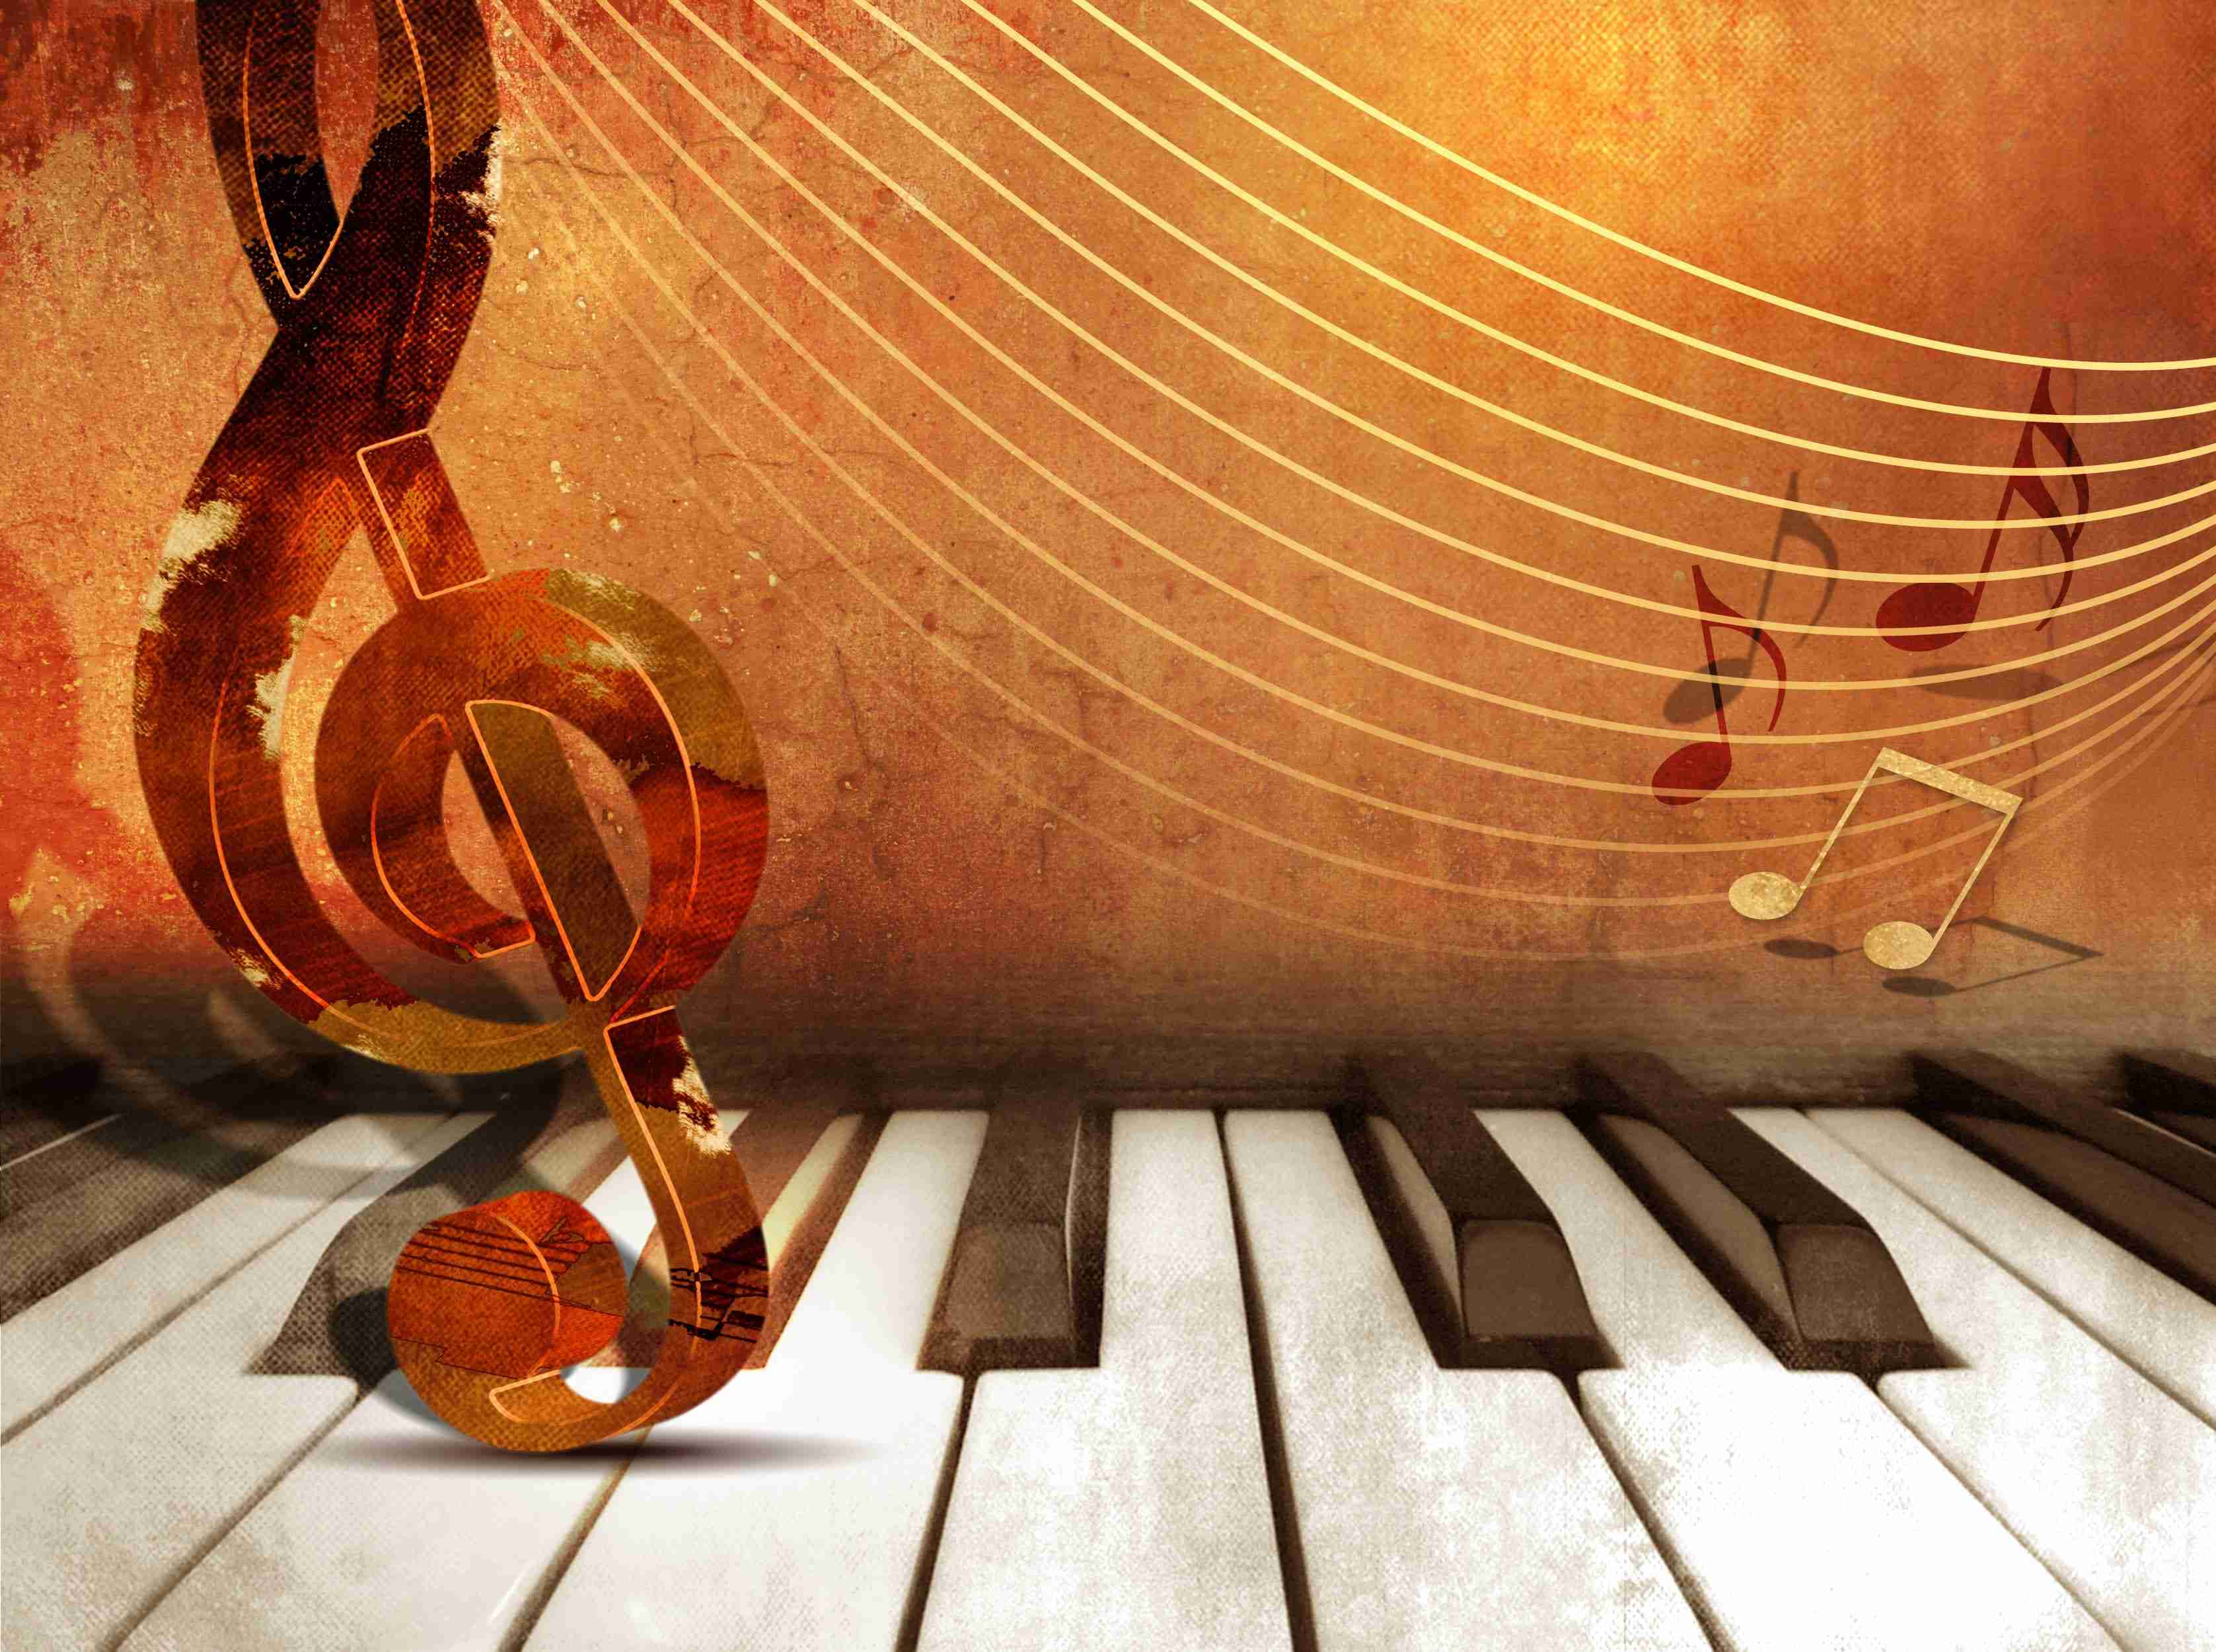 background images about music HD Free Music Backgrounds Image